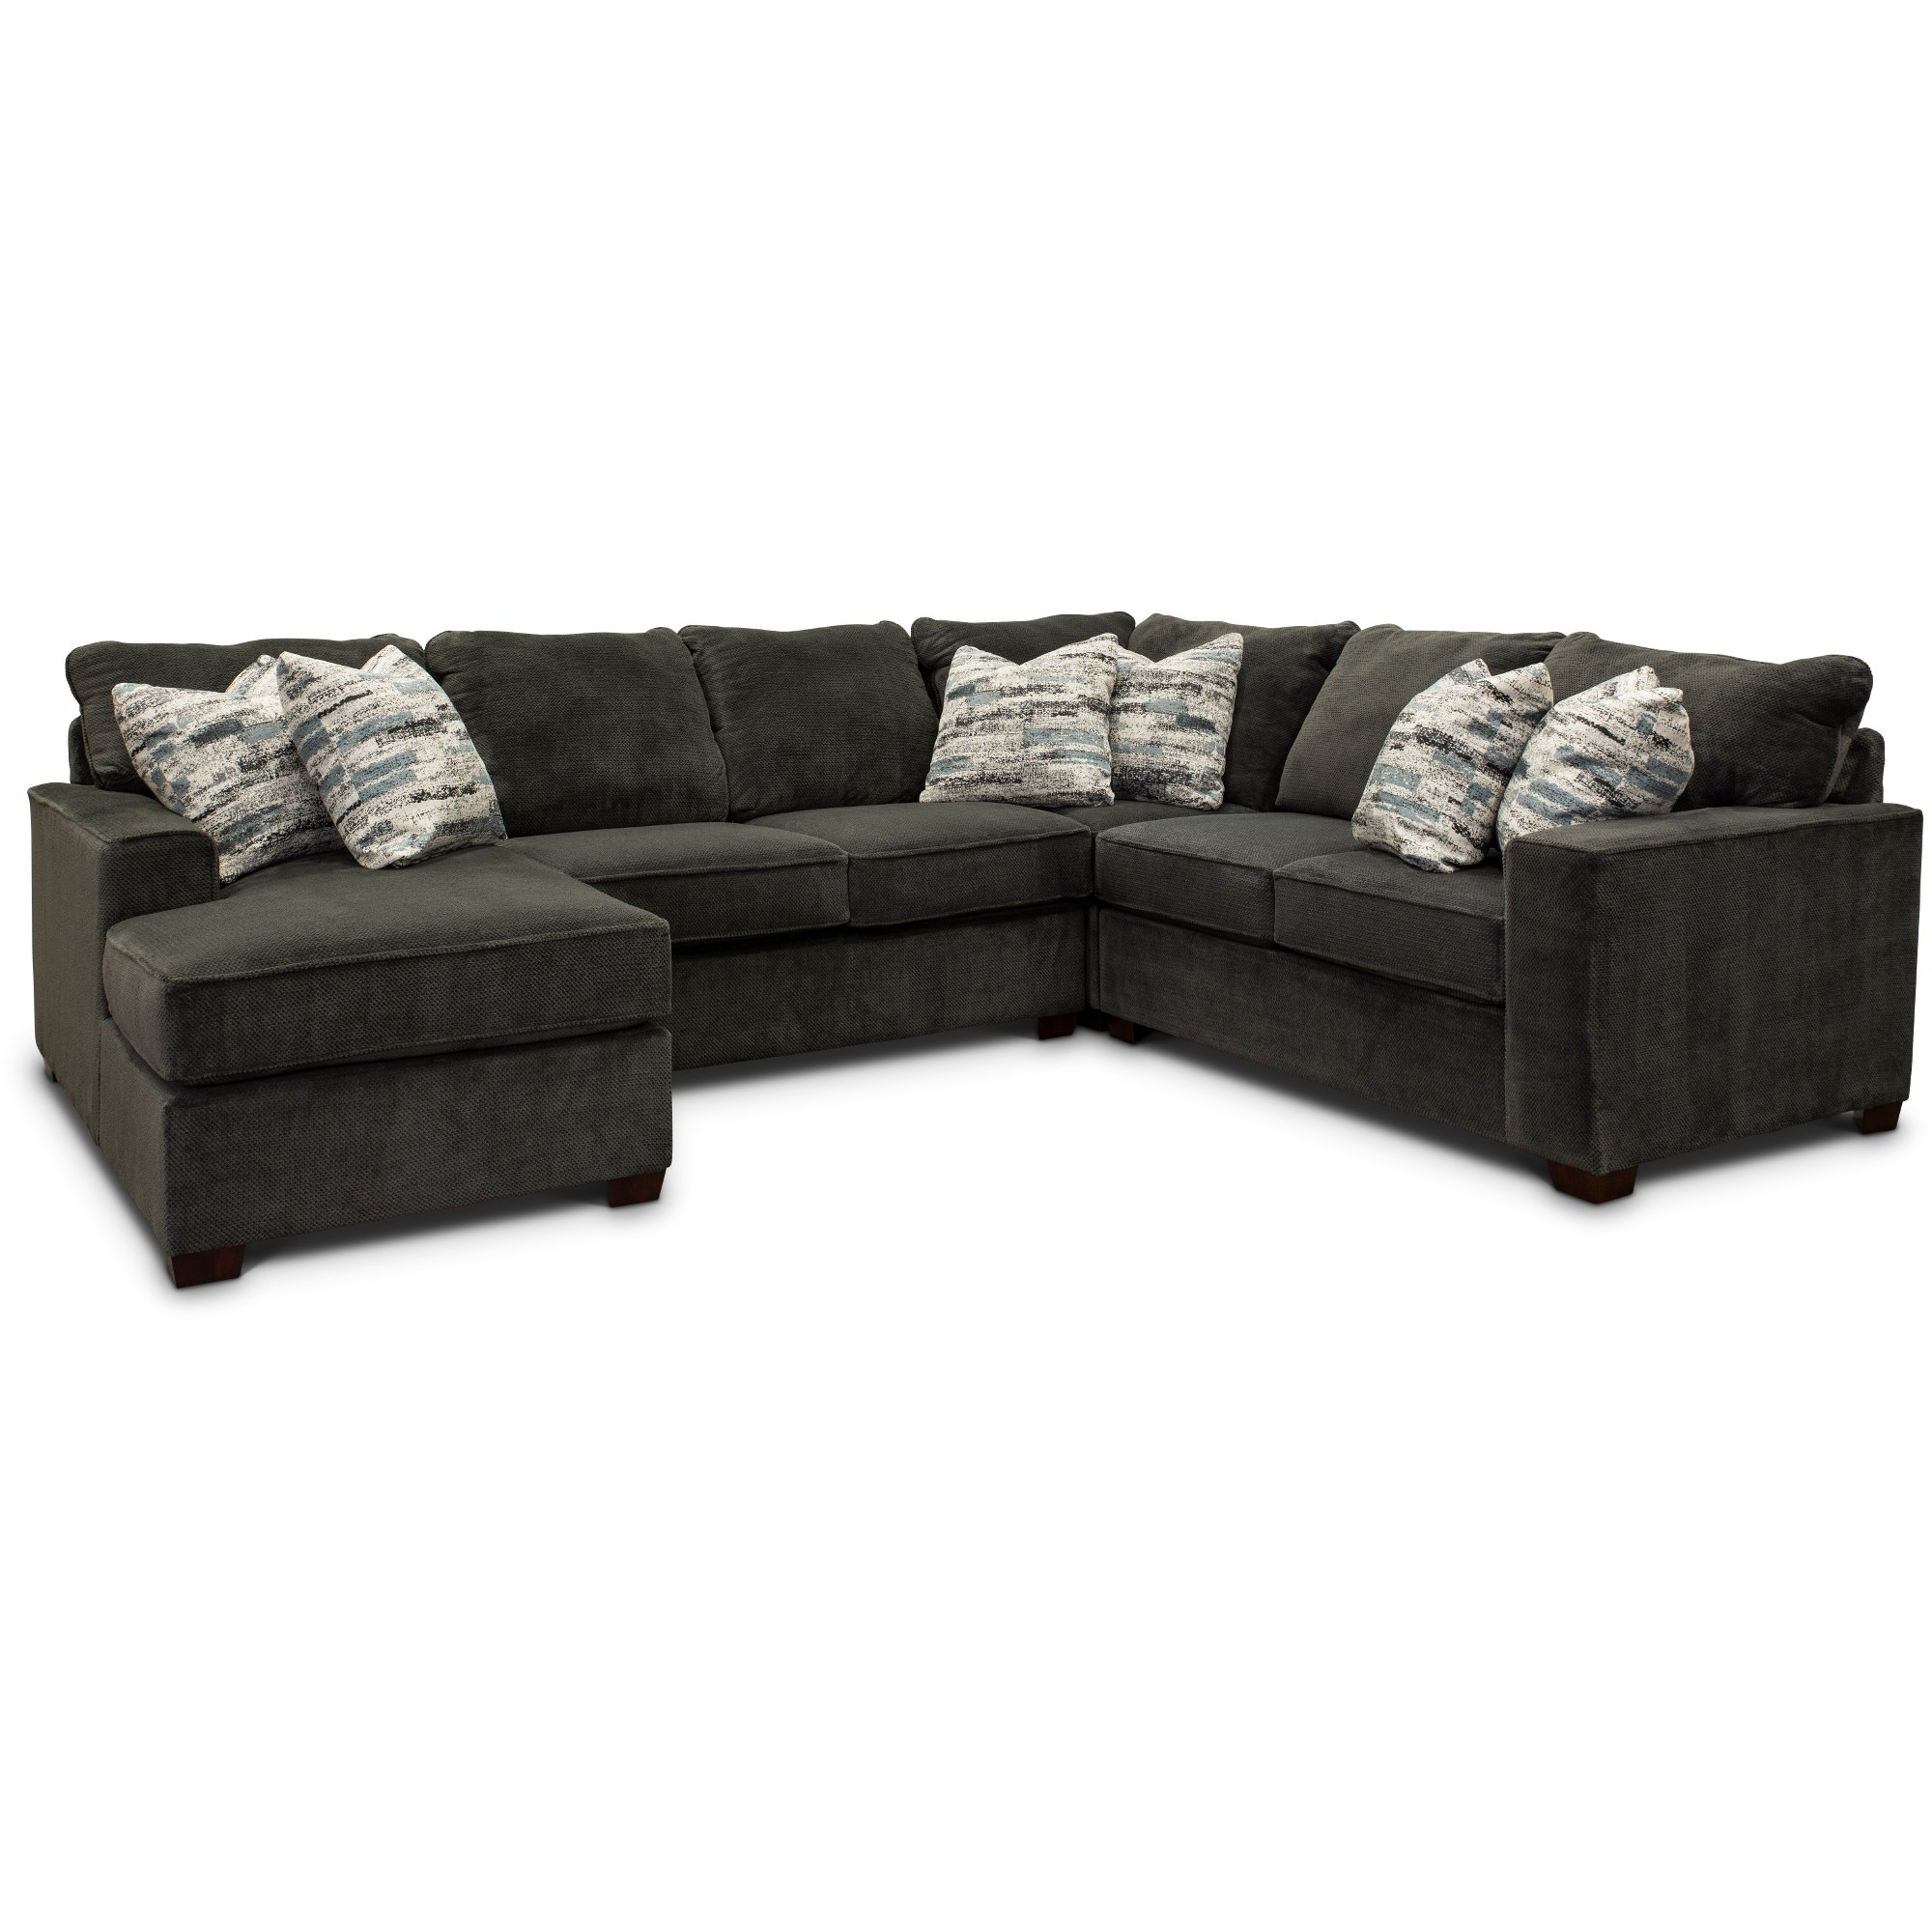 Dark Gray 4 Piece Sectional Sofa with RAF Loveseat - Autumn | RC Willey  Furniture Store